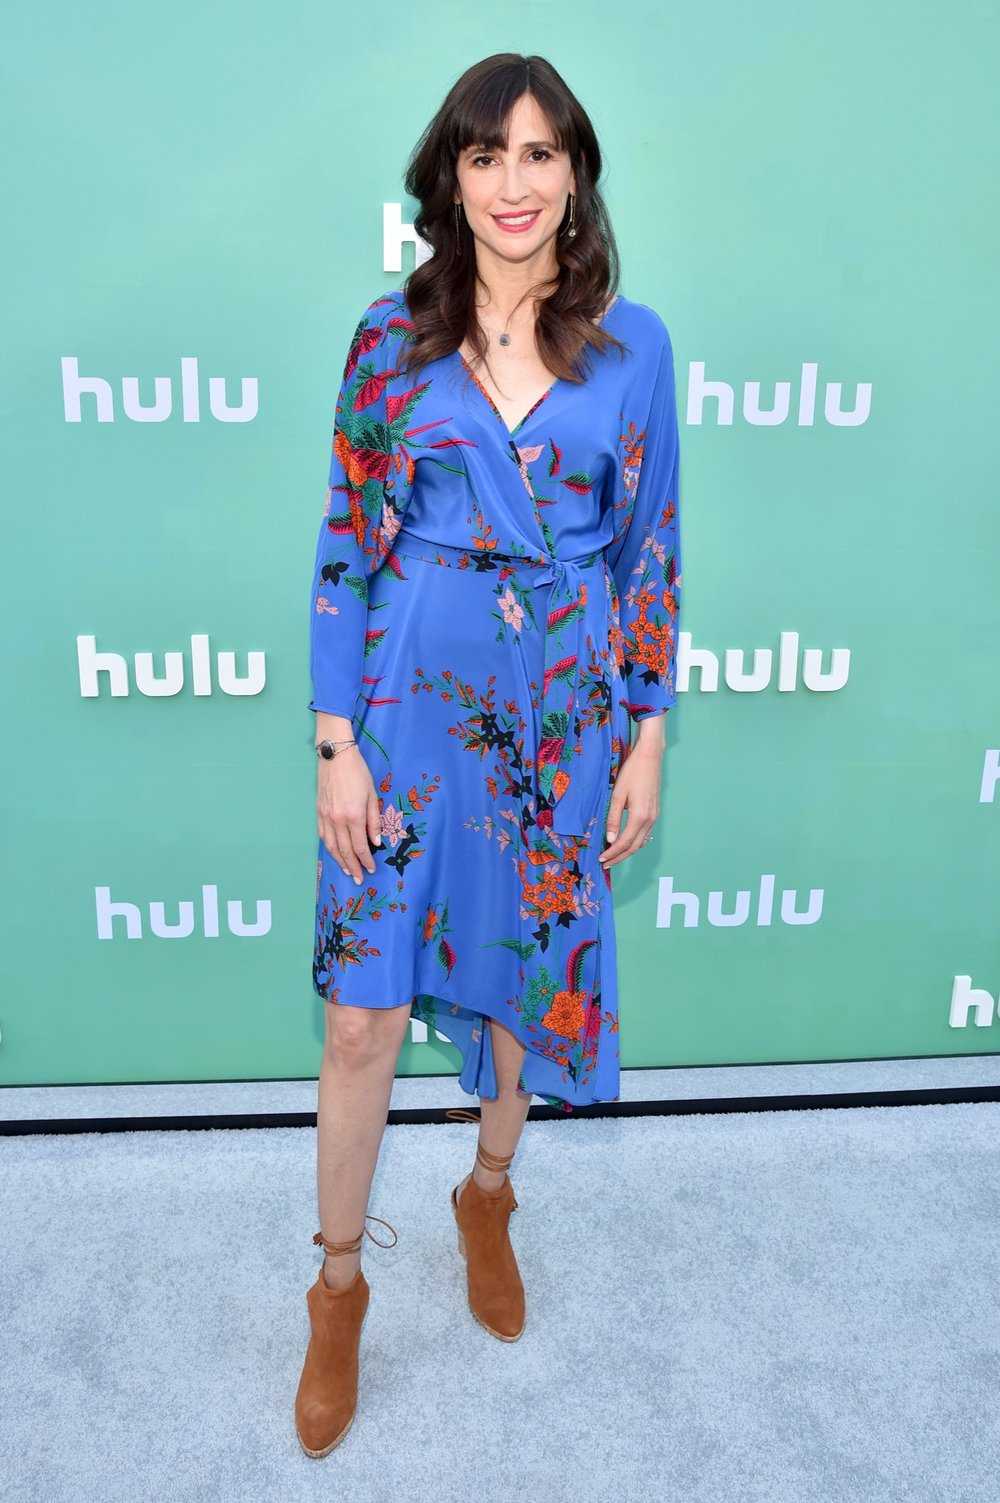 NEW YORK, NY - MAY 02:  Michaela Watkins attends the Hulu Upfront 2018 Brunch at La Sirena on May 2, 2018 in New York City.  (Photo by Bryan Bedder/Getty Images for Hulu) *** Local Caption *** Michaela Watkins